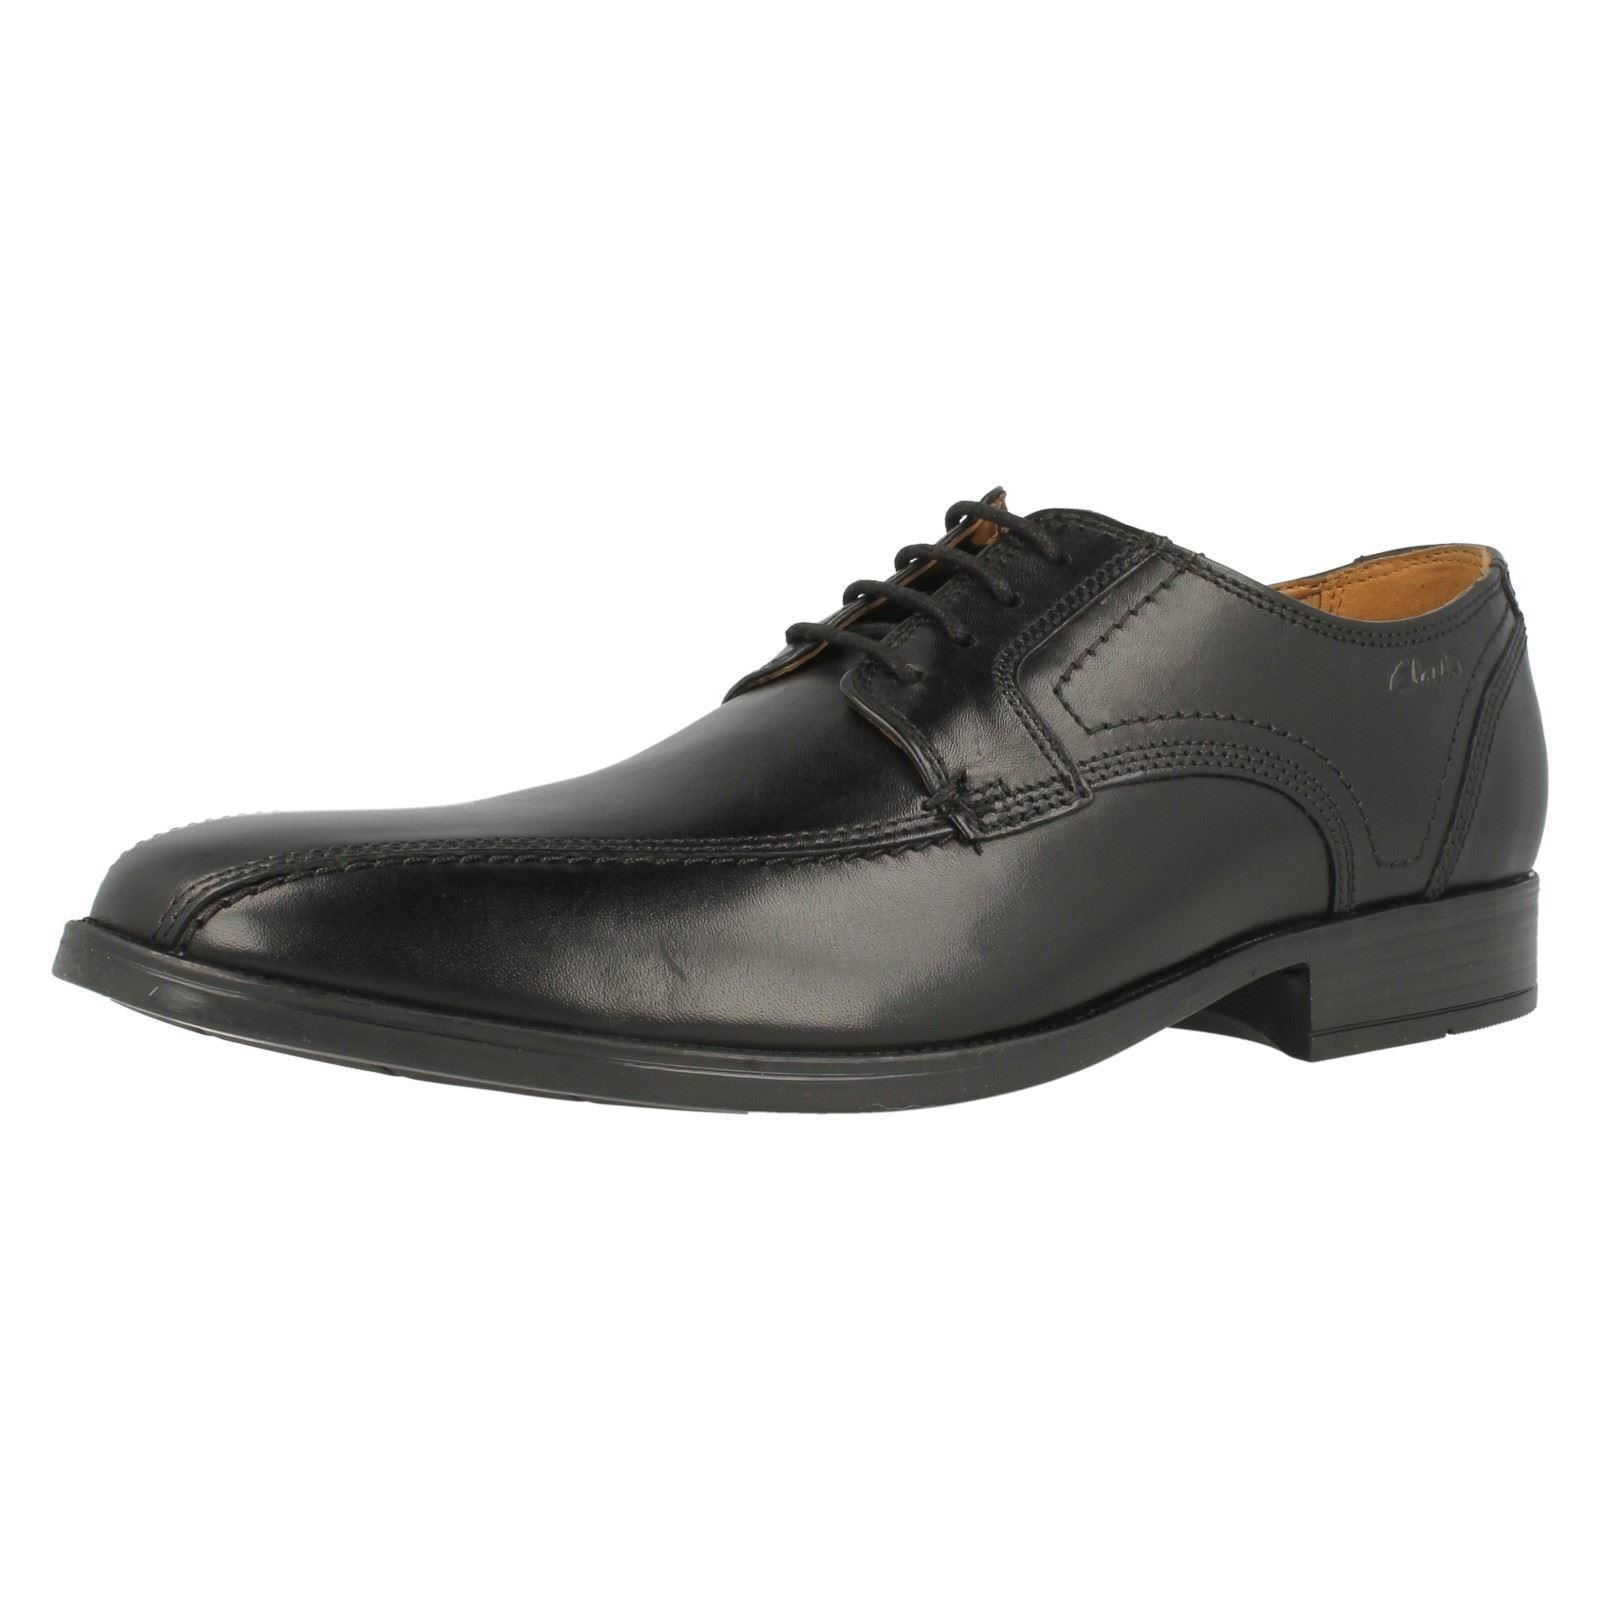 CLARKS KALDEN VIBE LACE UP SHOES